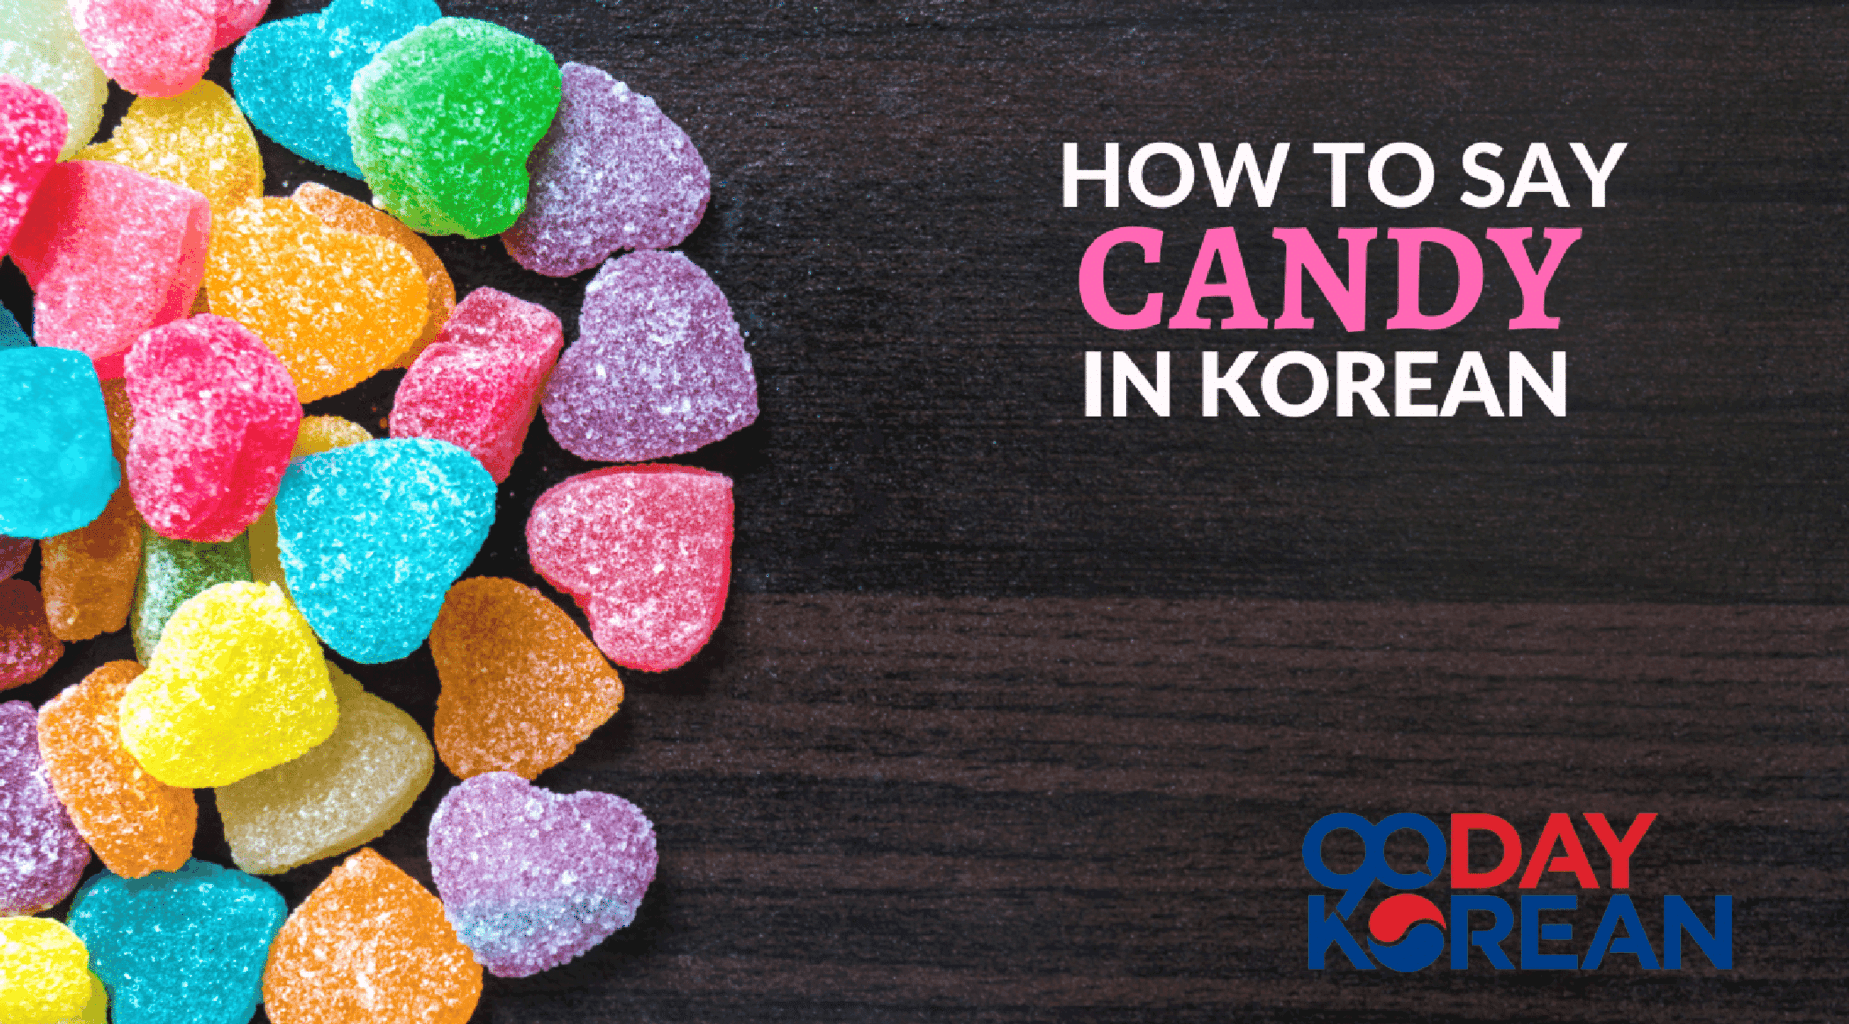 How To Say Candy In Korean